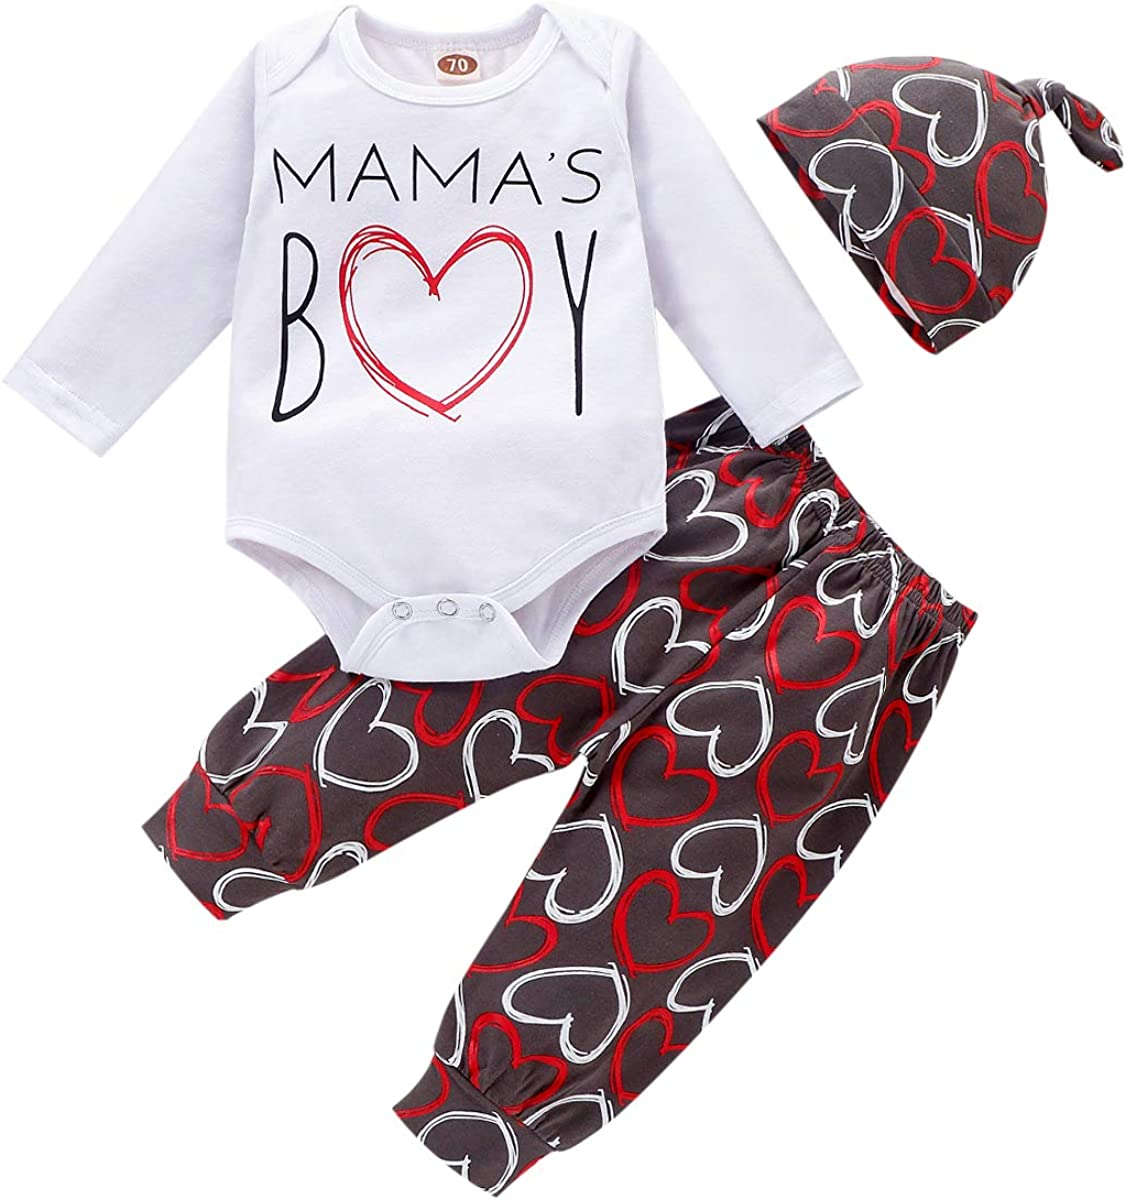 Newborn Infant Baby Boys Valentines Day Outfits Mamas BOY Printed Romper+Long Pants+Little Man Hat 3Pcs Clothes Set